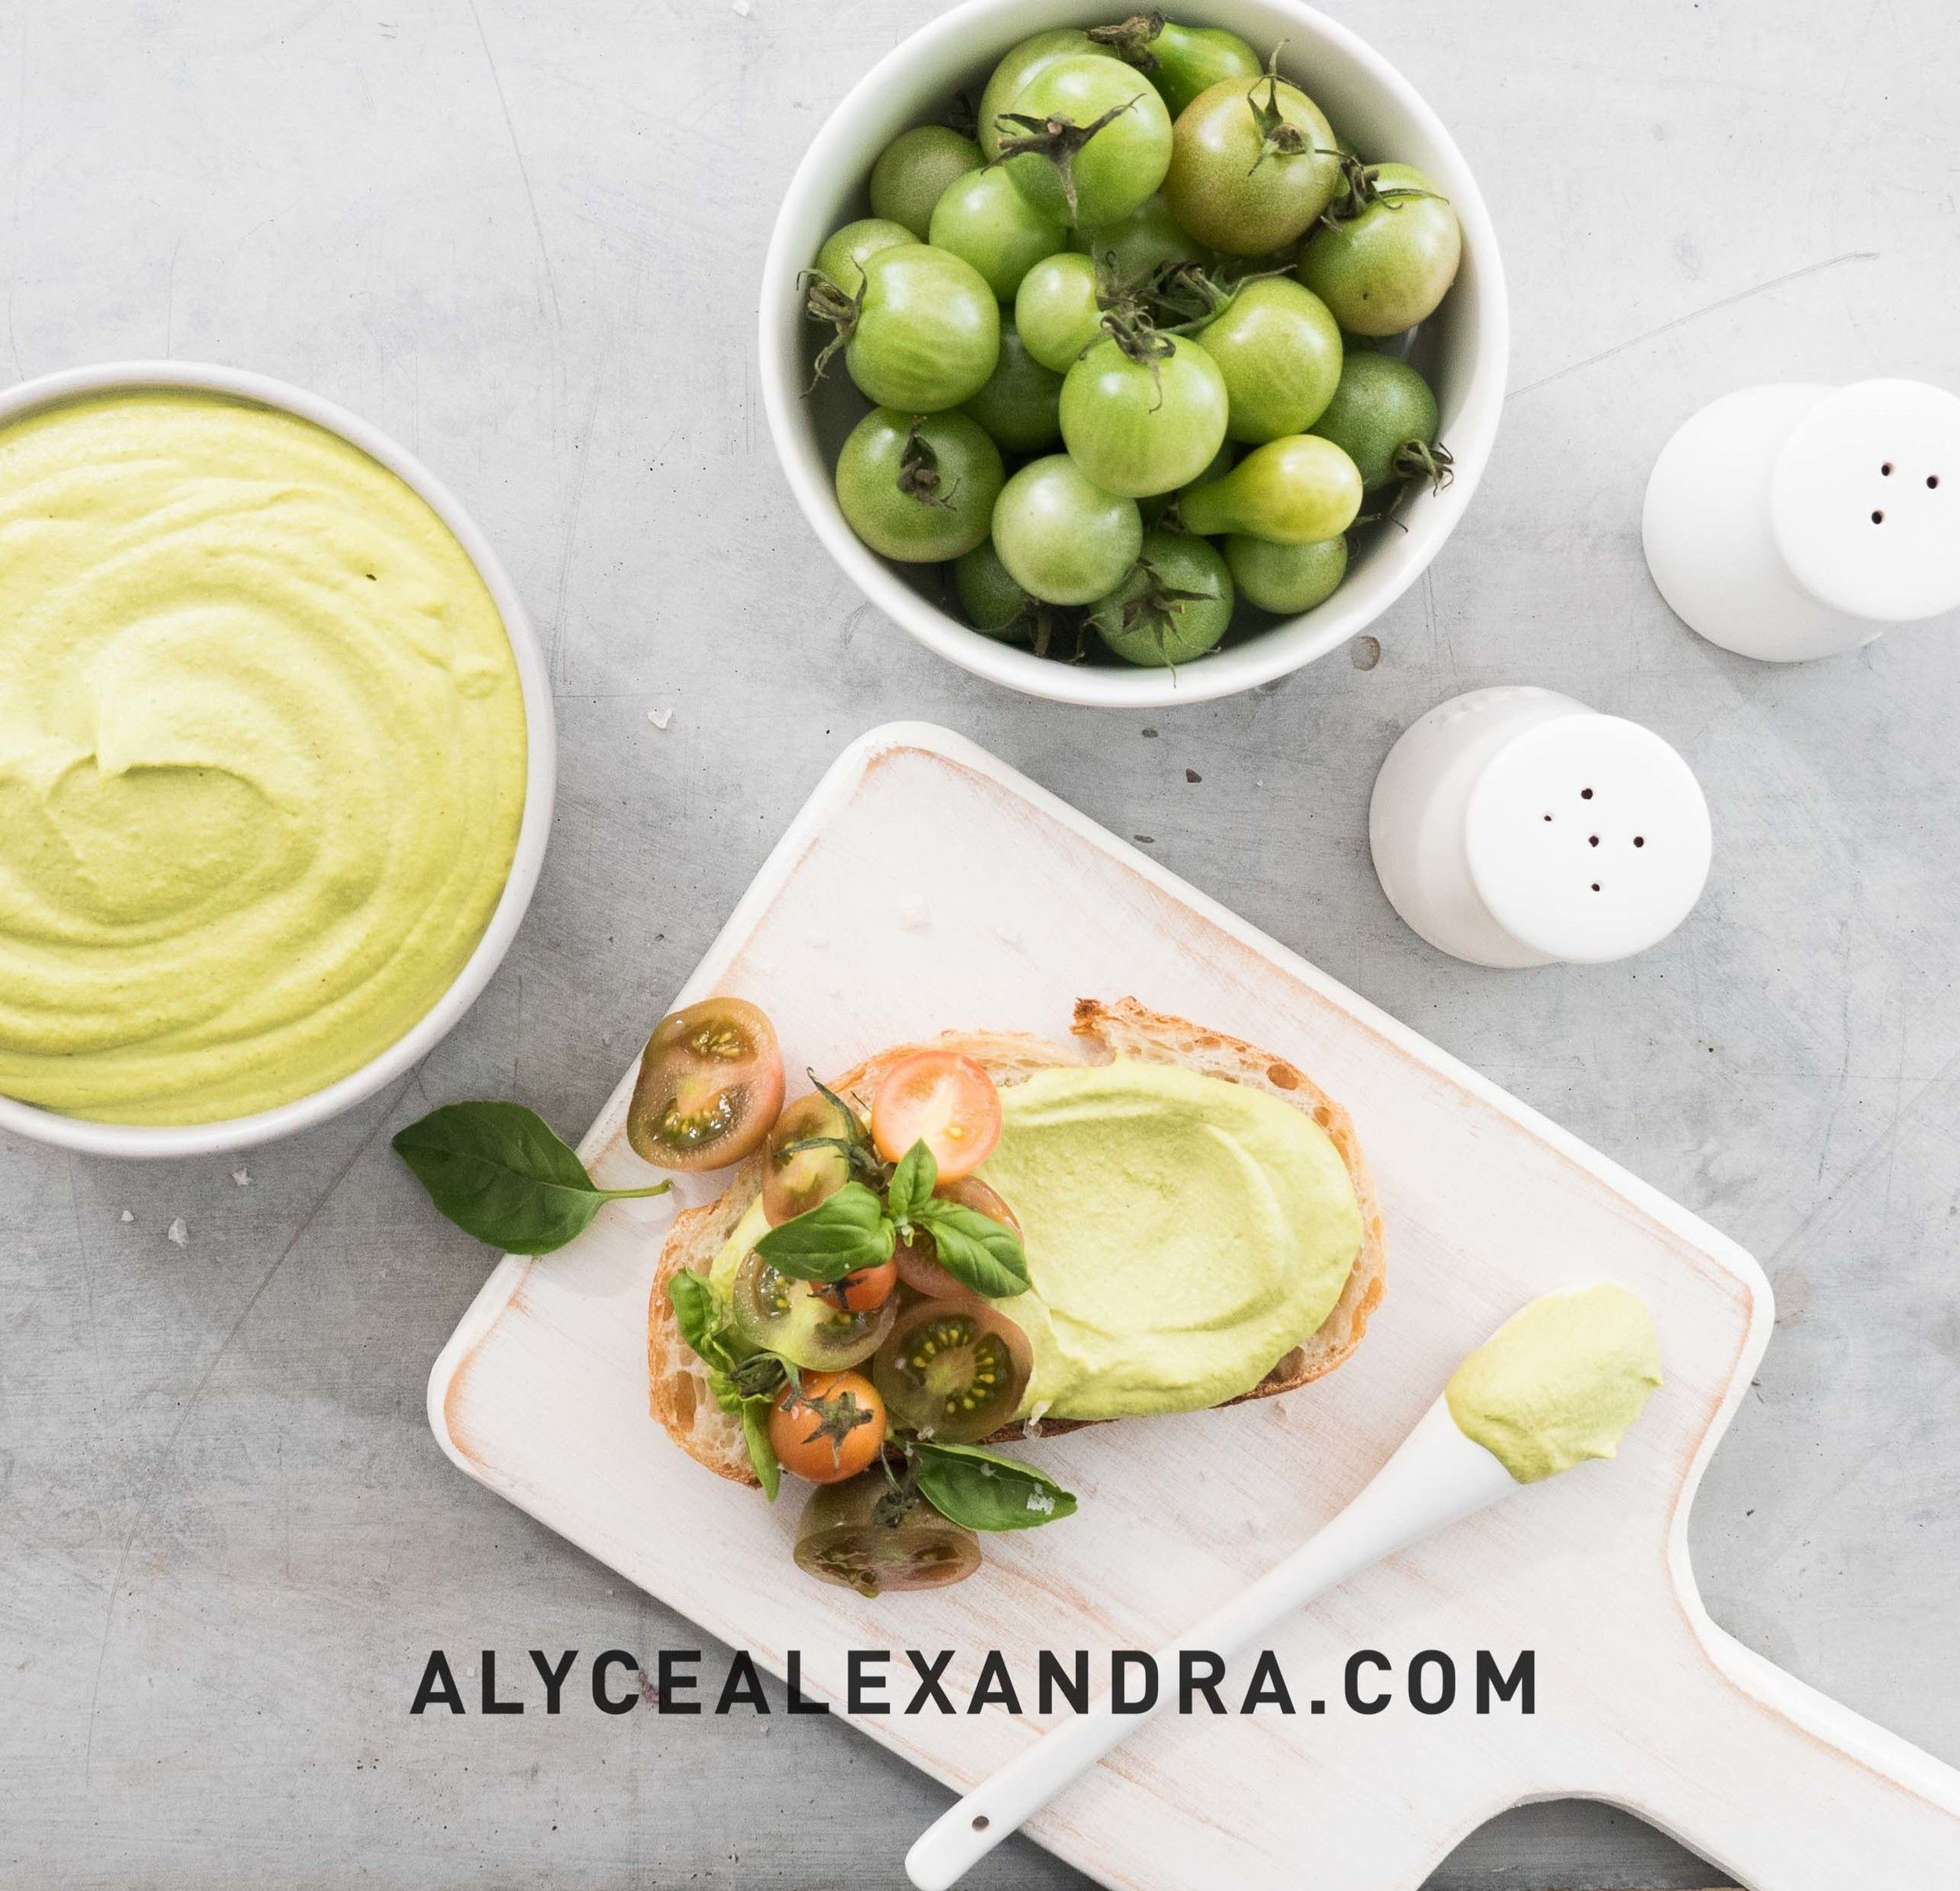 Thermomix Vegan Cheese Dip Thermomix Recipes Blog In 2020 Thermomix Recipes Vegan Cheese Vegan Recipes